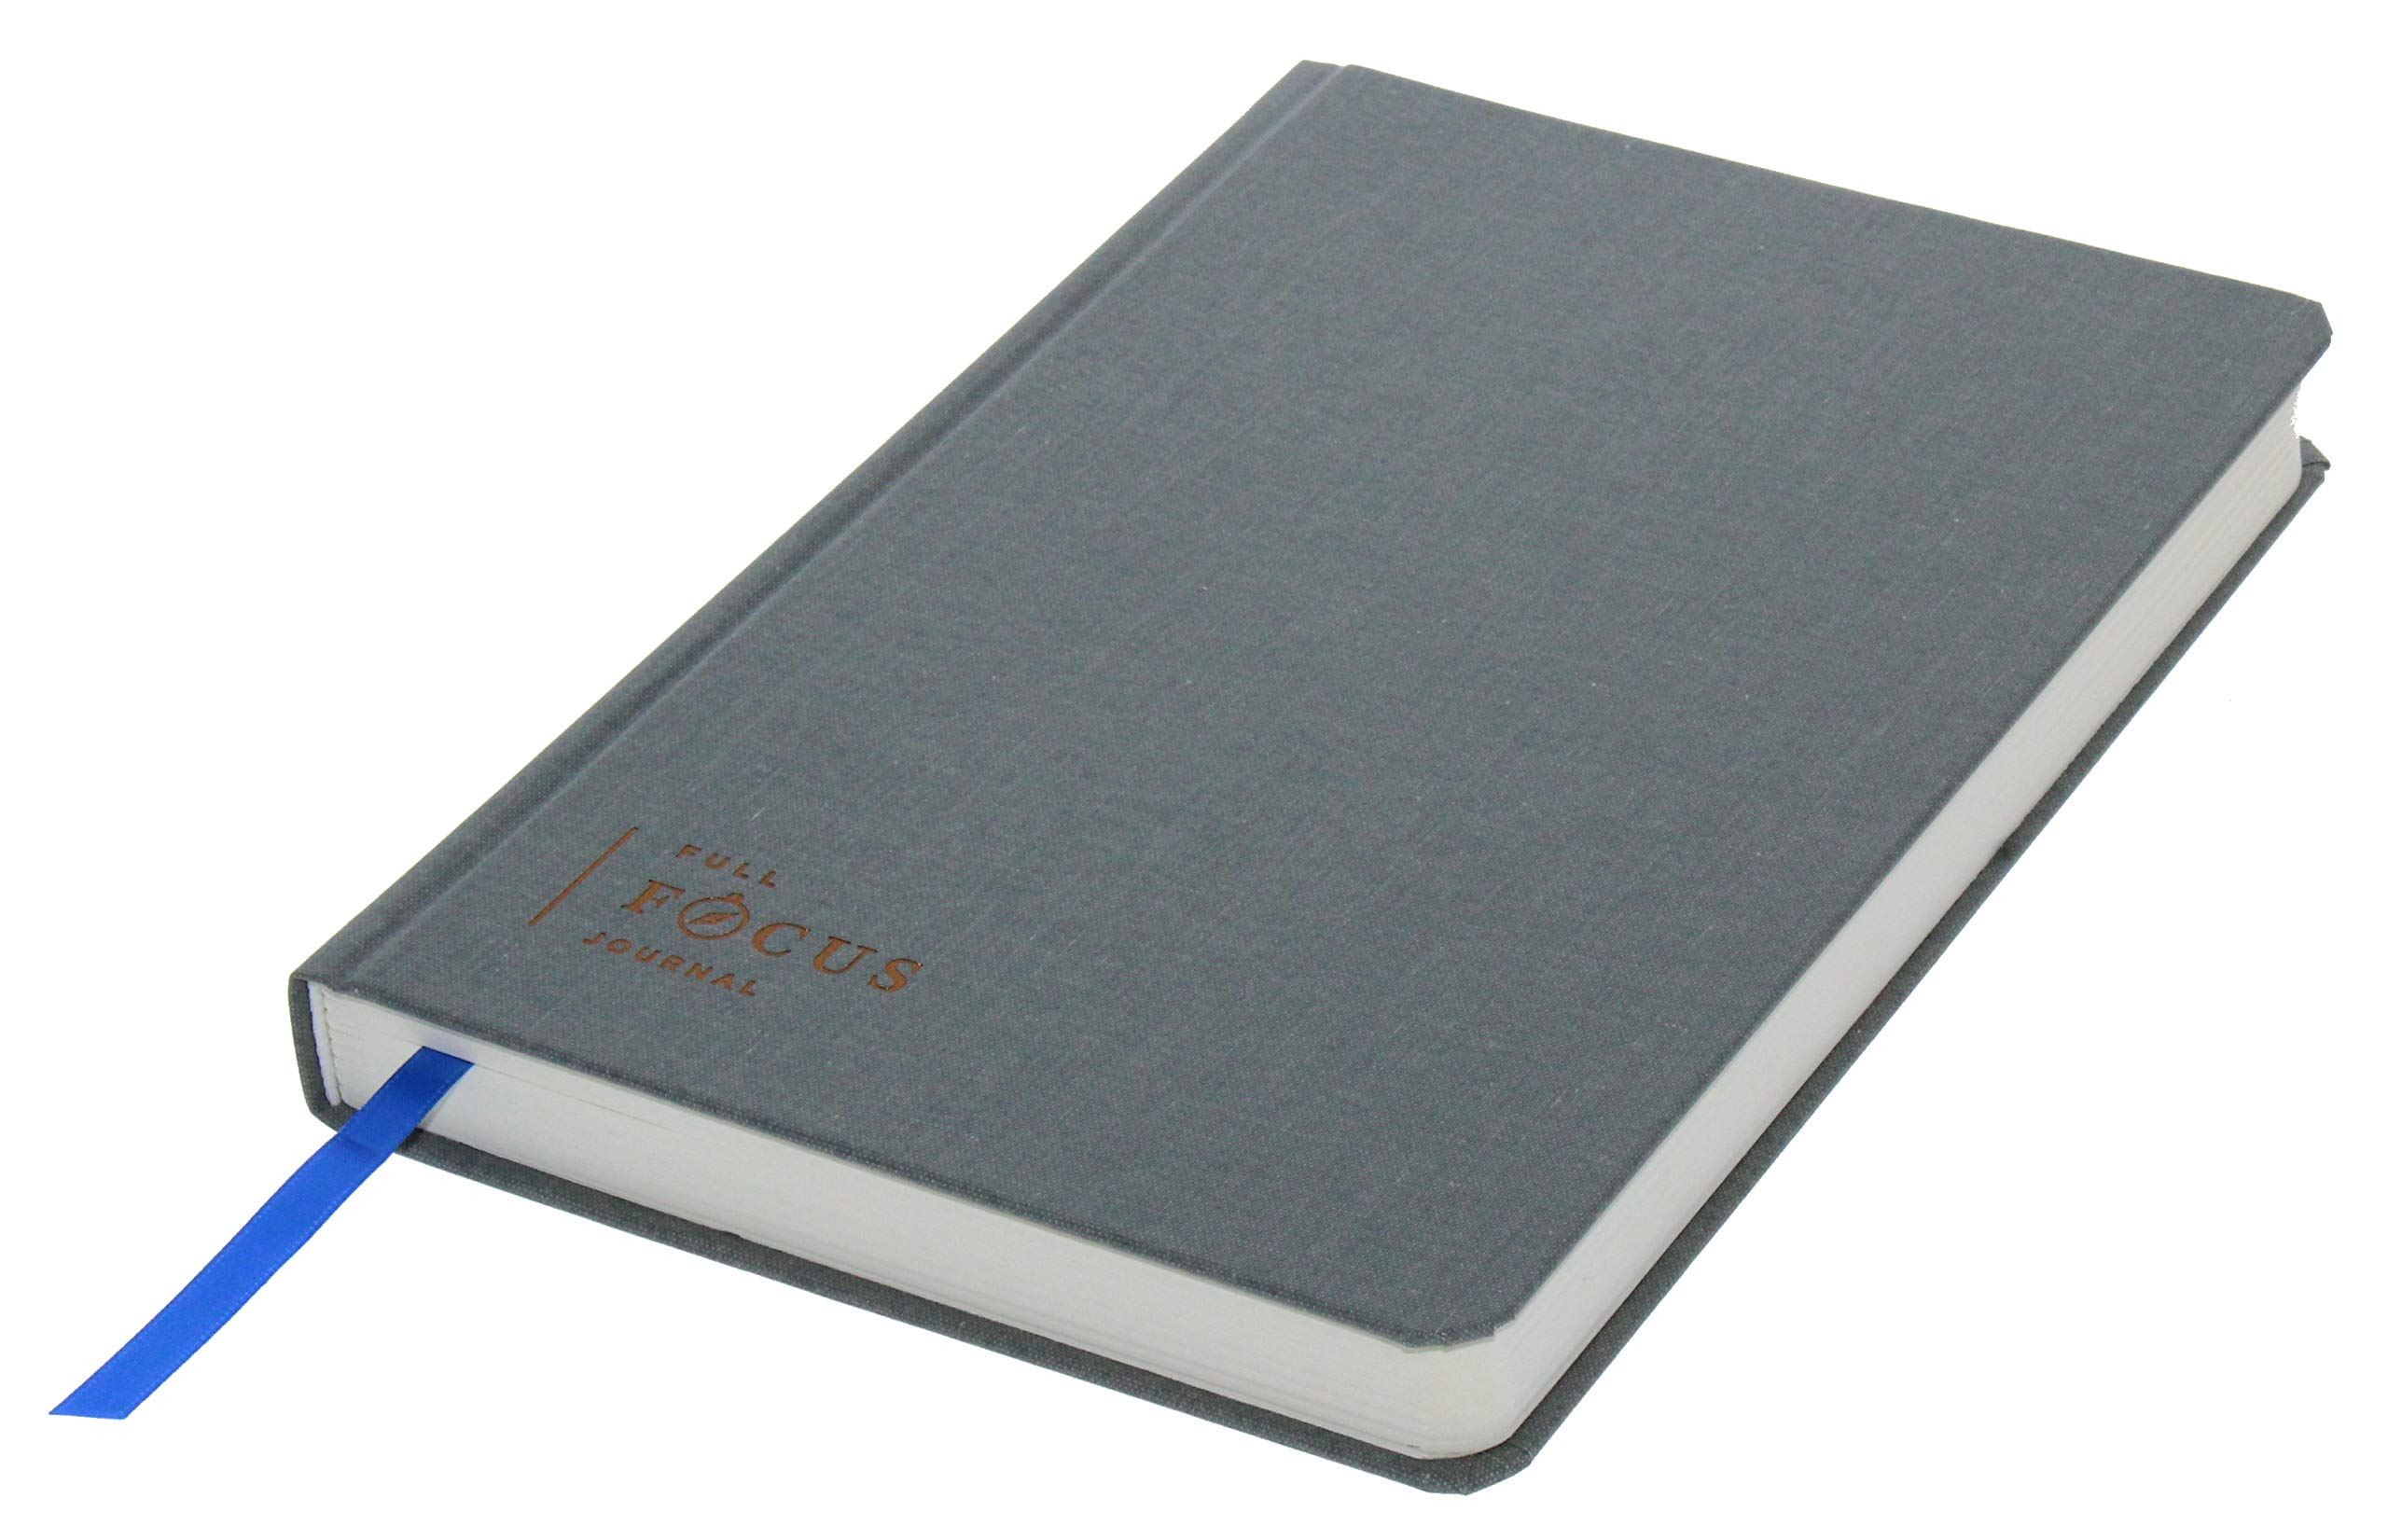 Full Focus Journal by Michael Hyatt - The Daily Journal to Clarify Your Thinking, Process Your Days, and Slow Down - Gratitude & Productivity Journal - Hardcover by Full Focus Journal